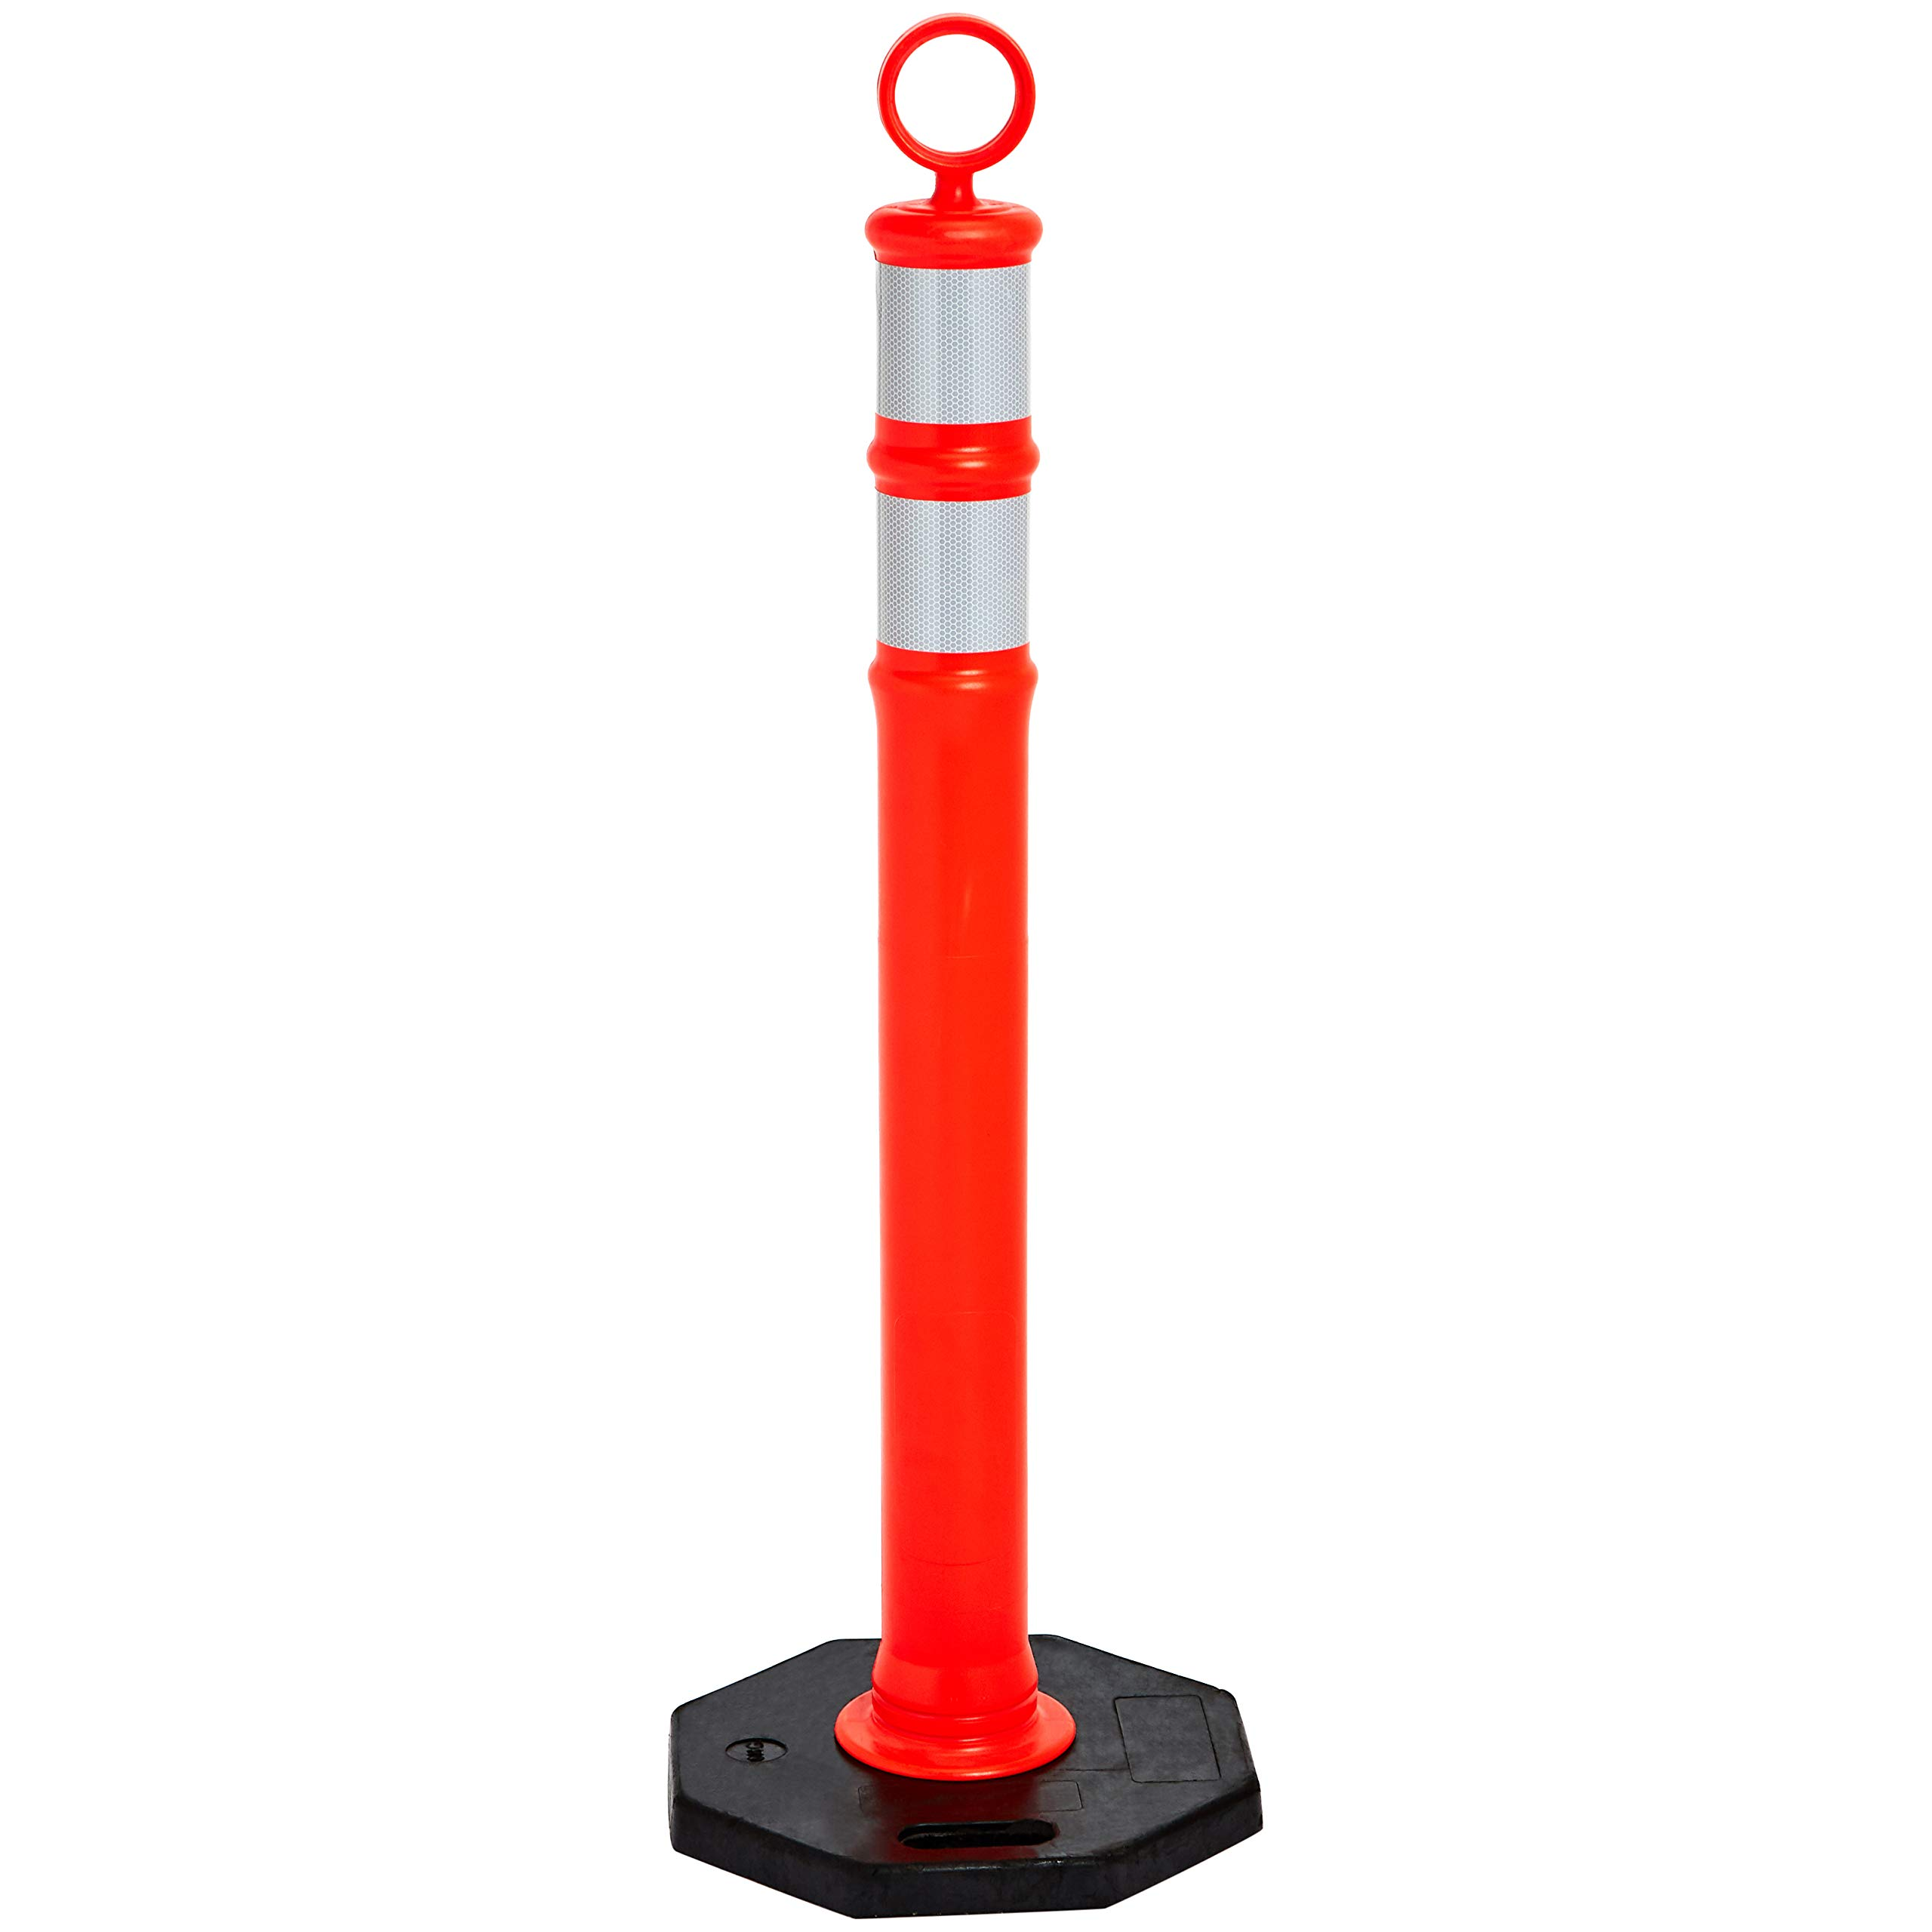 AmazonBasics Polyethylene Portable Traffic Delineator Post with 13 lbs Recycled Rubber Base, 46'' Height, Orange by AmazonBasics